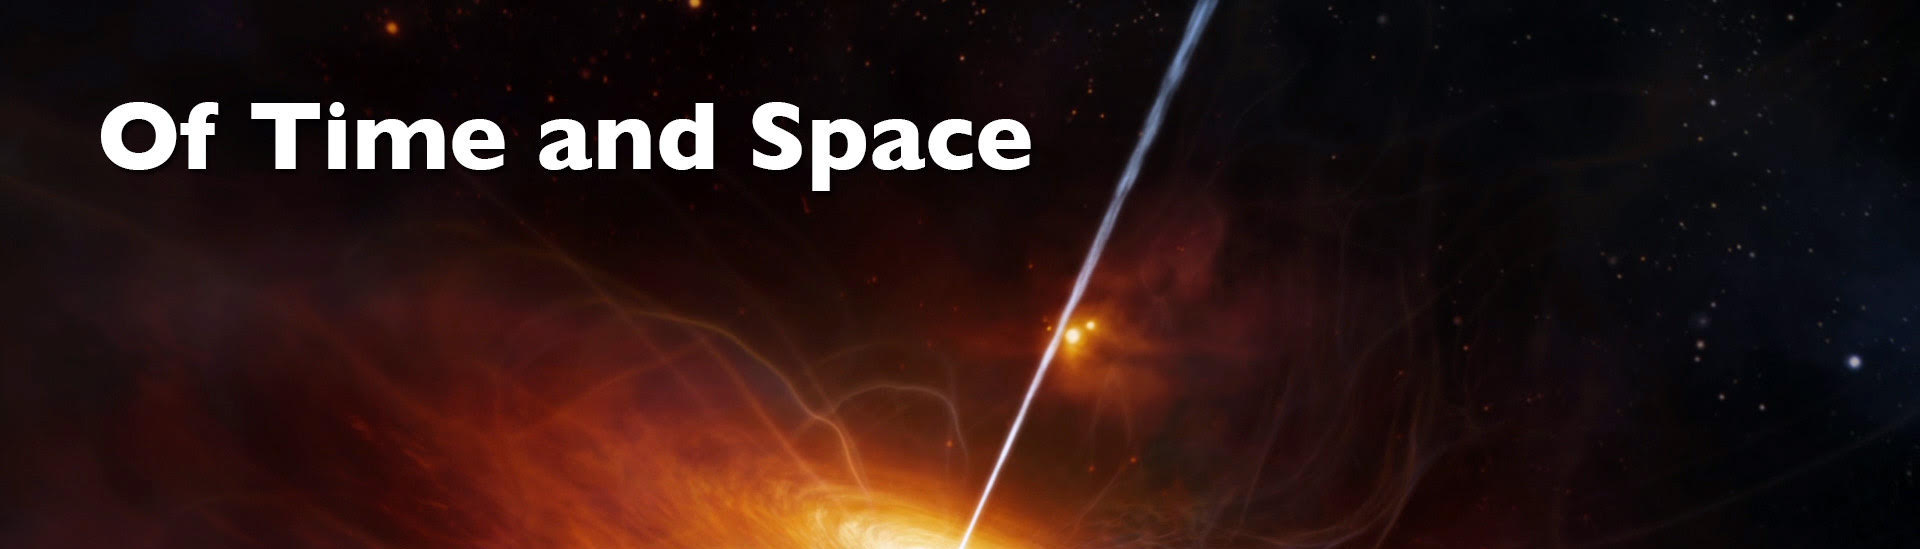 Of-Time-and-Space-1.jpg